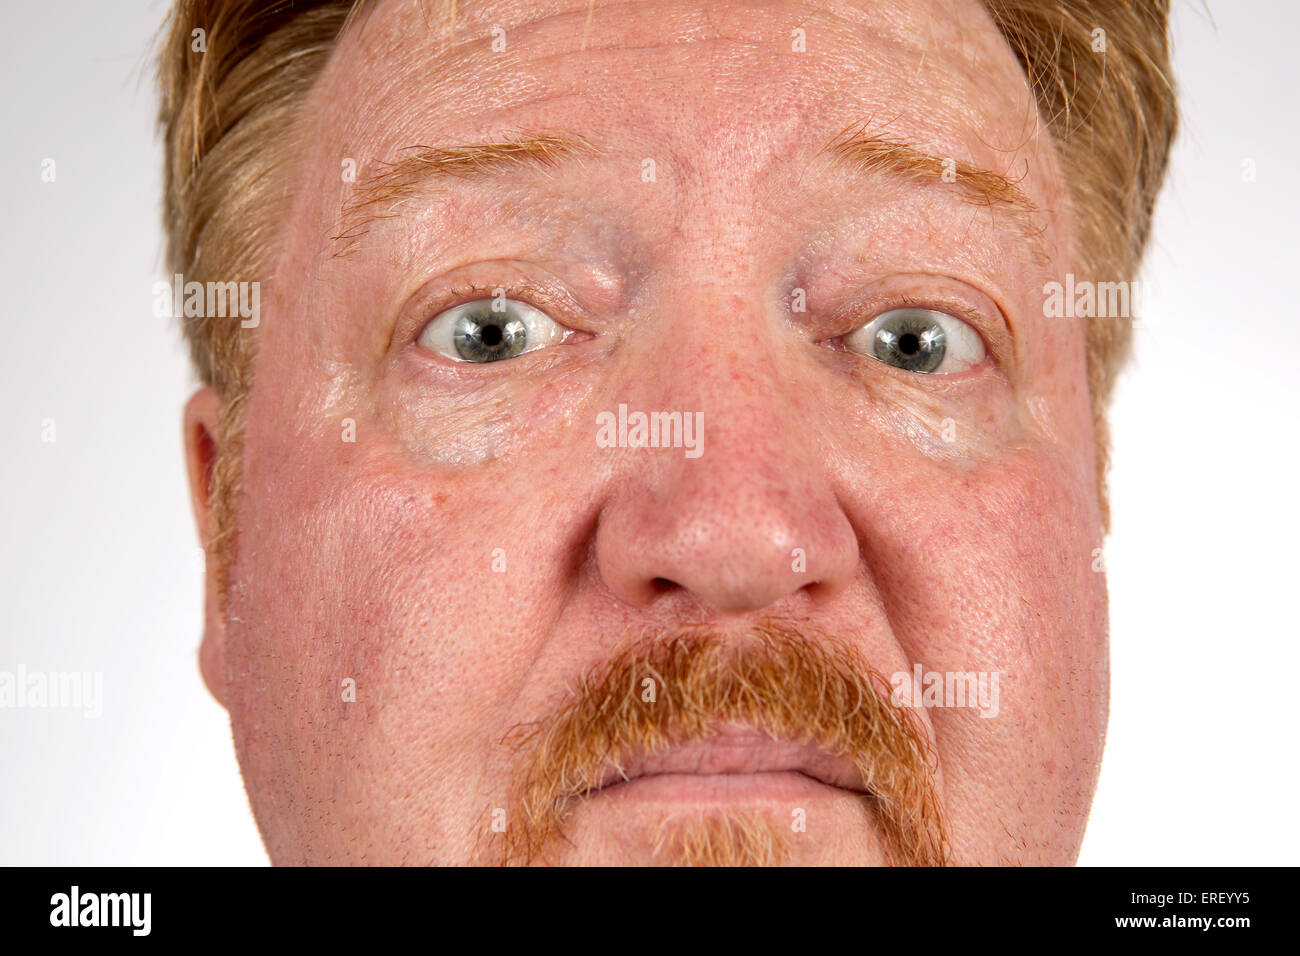 Close up of red haired man with a suspicious or skeptical expression on his face. - Stock Image